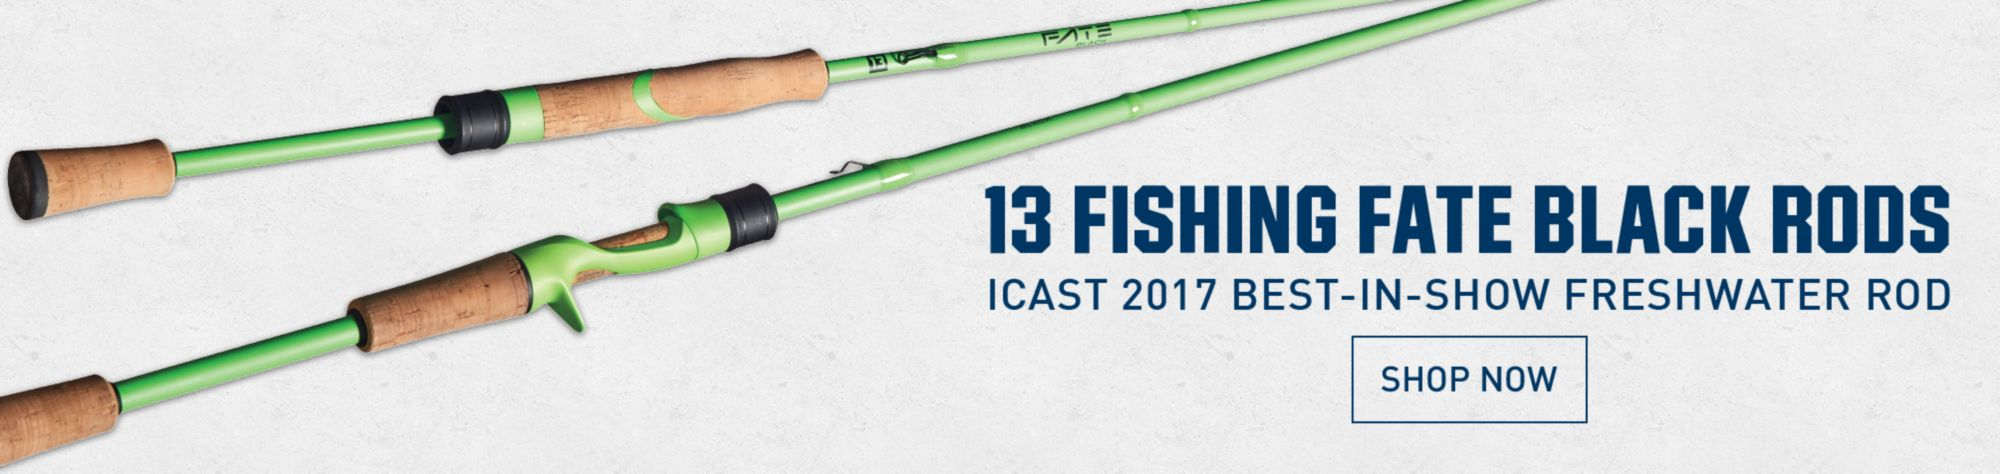 13 Fishing Fate Black Rods - ICAST 217 Best-In-Show Freshwater Rod - Shop Now